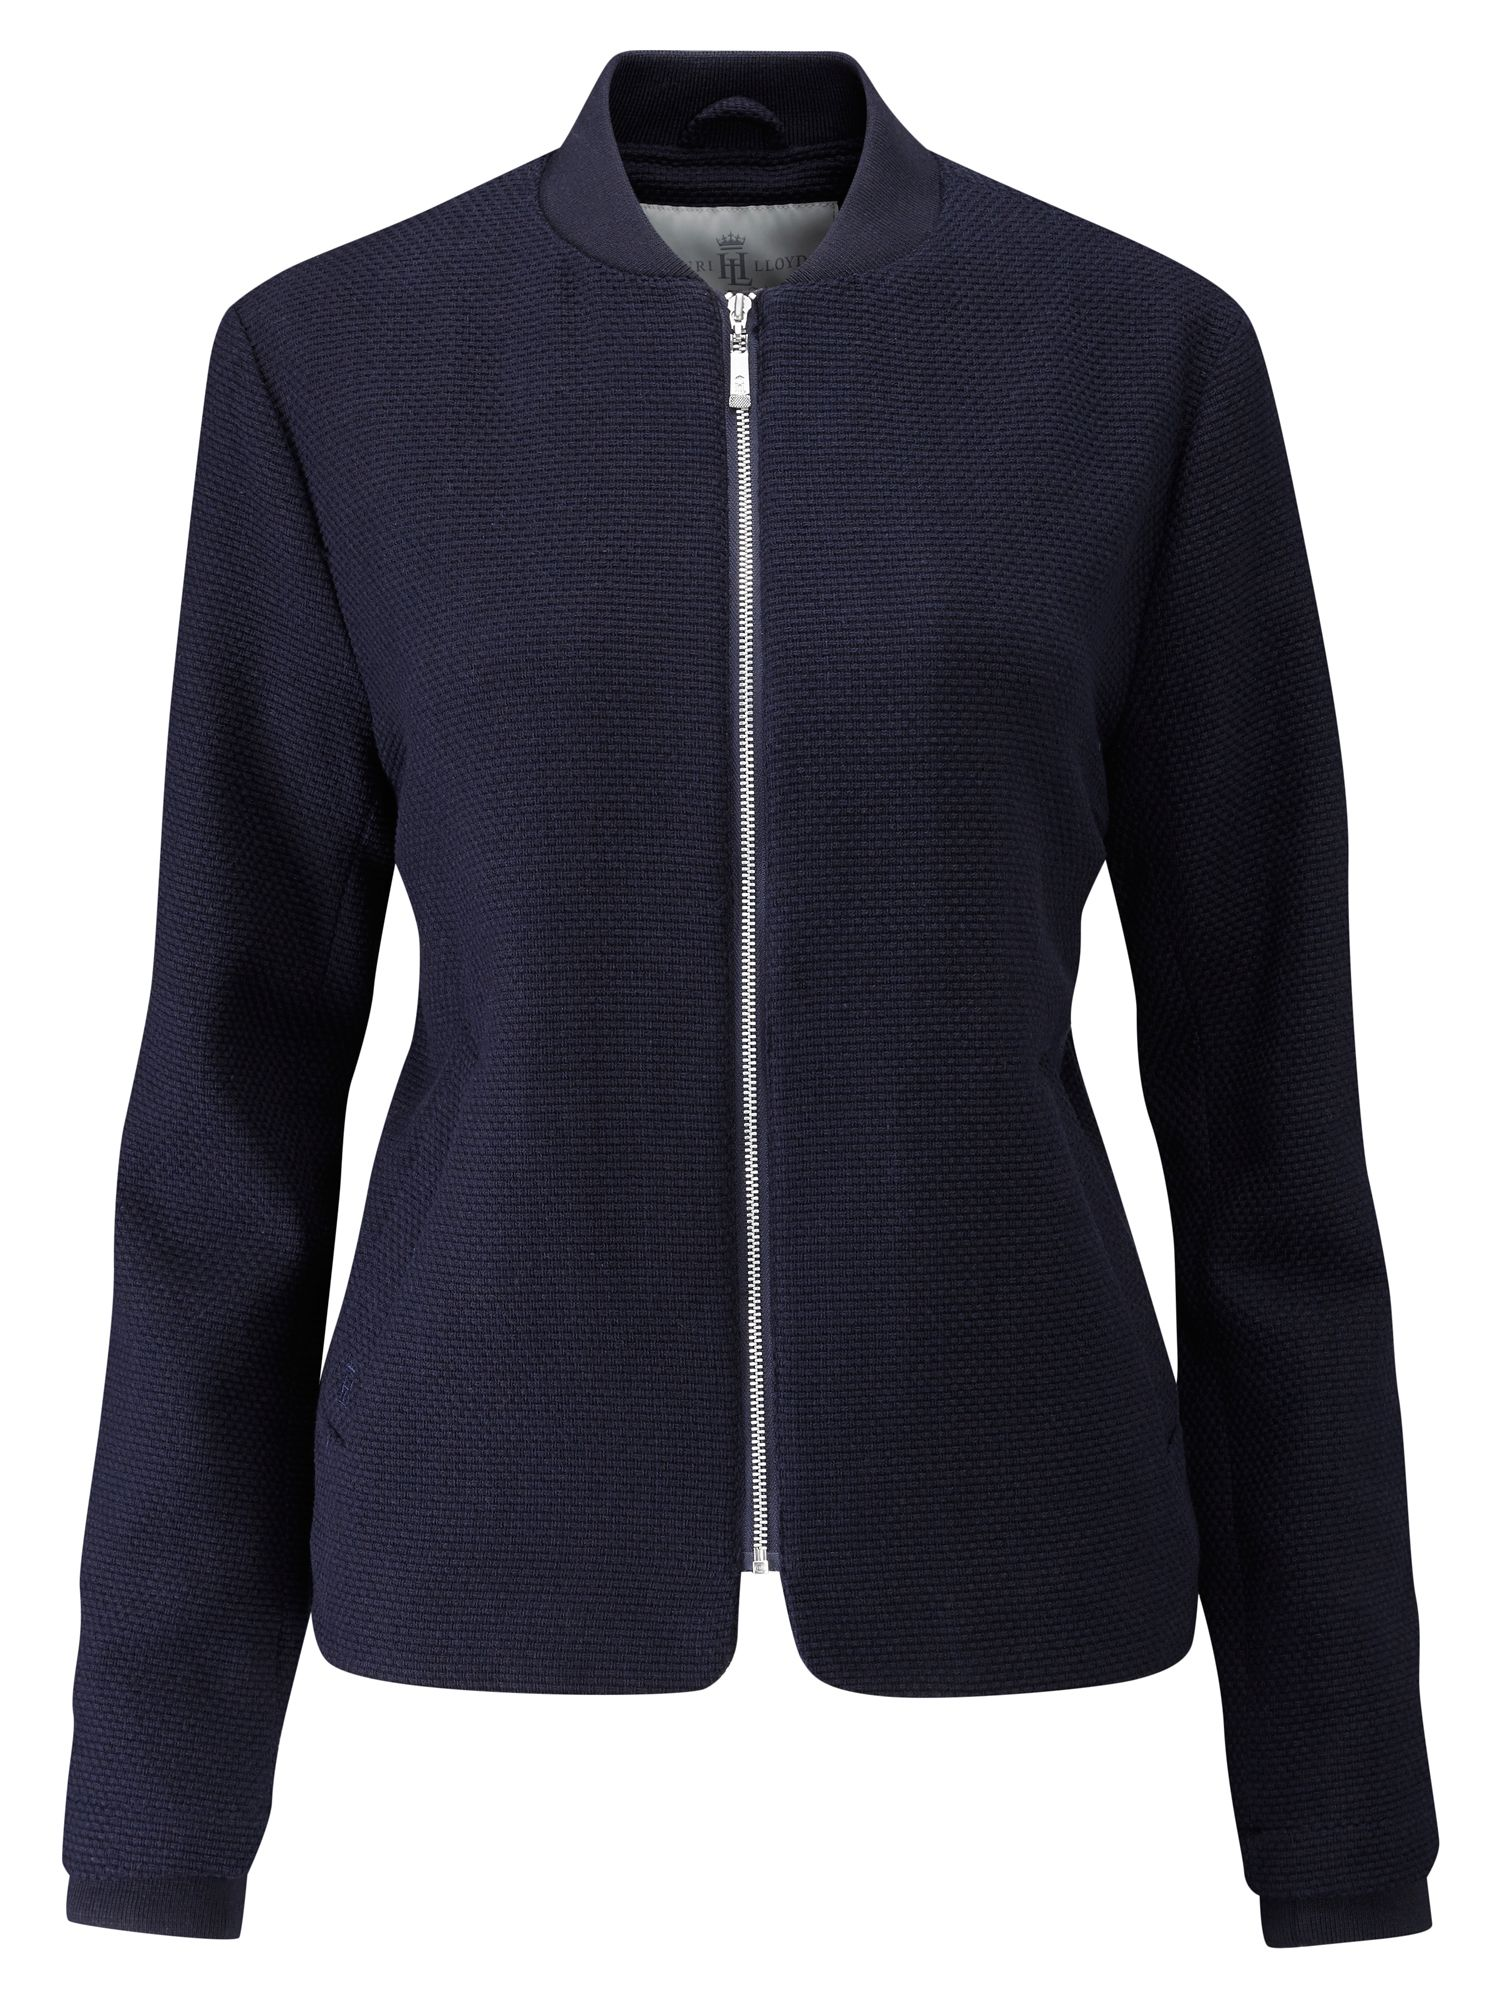 Henri Lloyd Renee Bomber Jacket, Blue